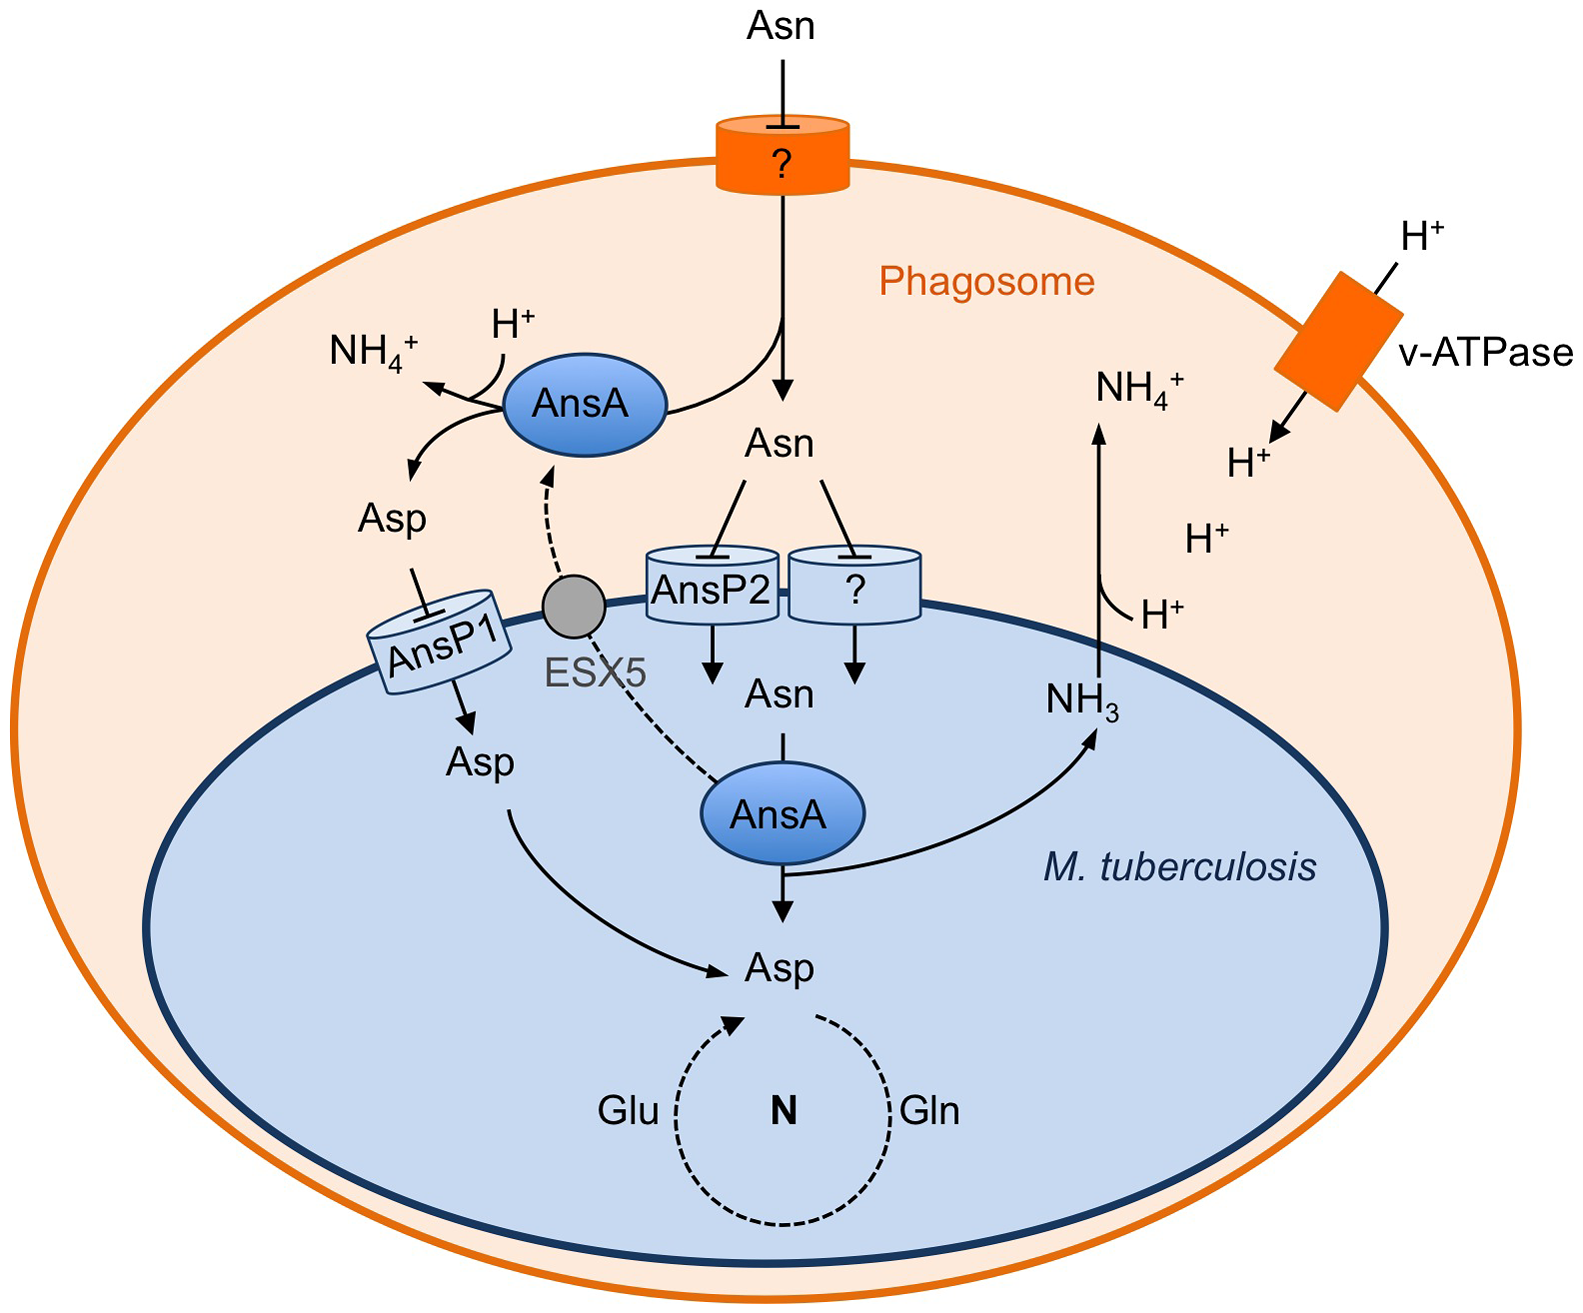 Schematic representation of the role of asparagine catabolism in nitrogen incorporation, resistance to acid and intracellular survival.